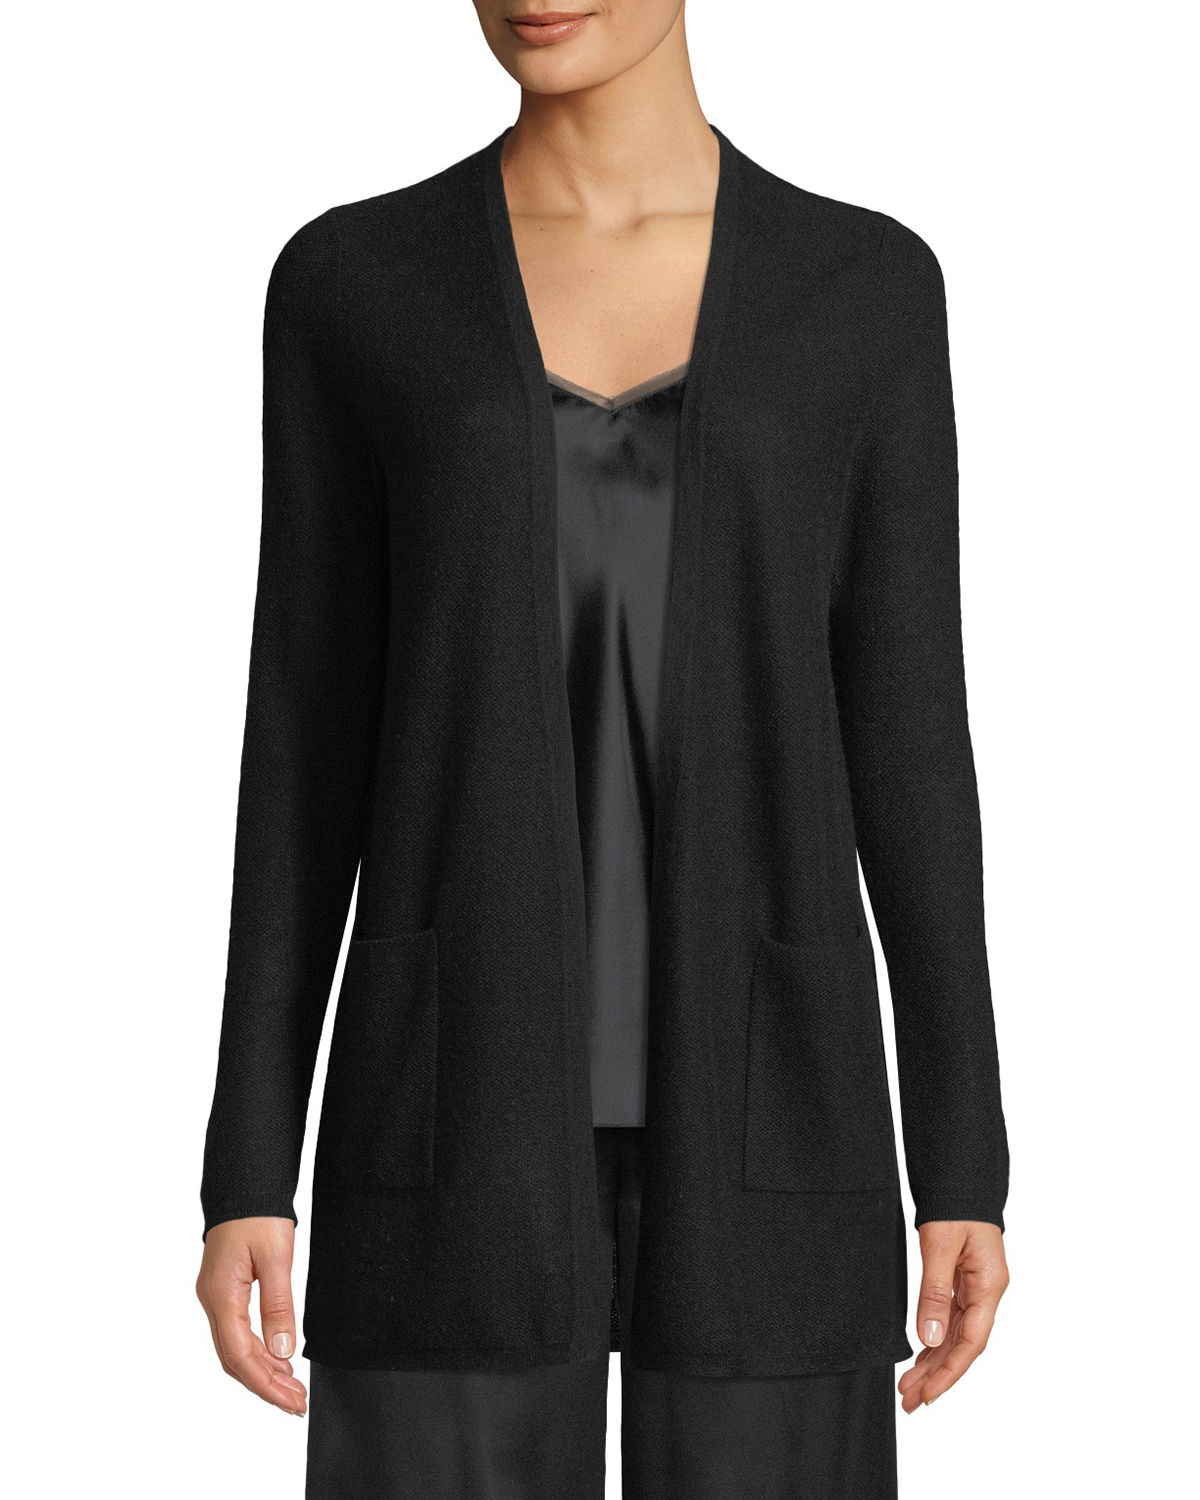 Neiman Marcus Knits CASHMERE WAFFLE-KNIT OPEN-FRONT CARDIGAN